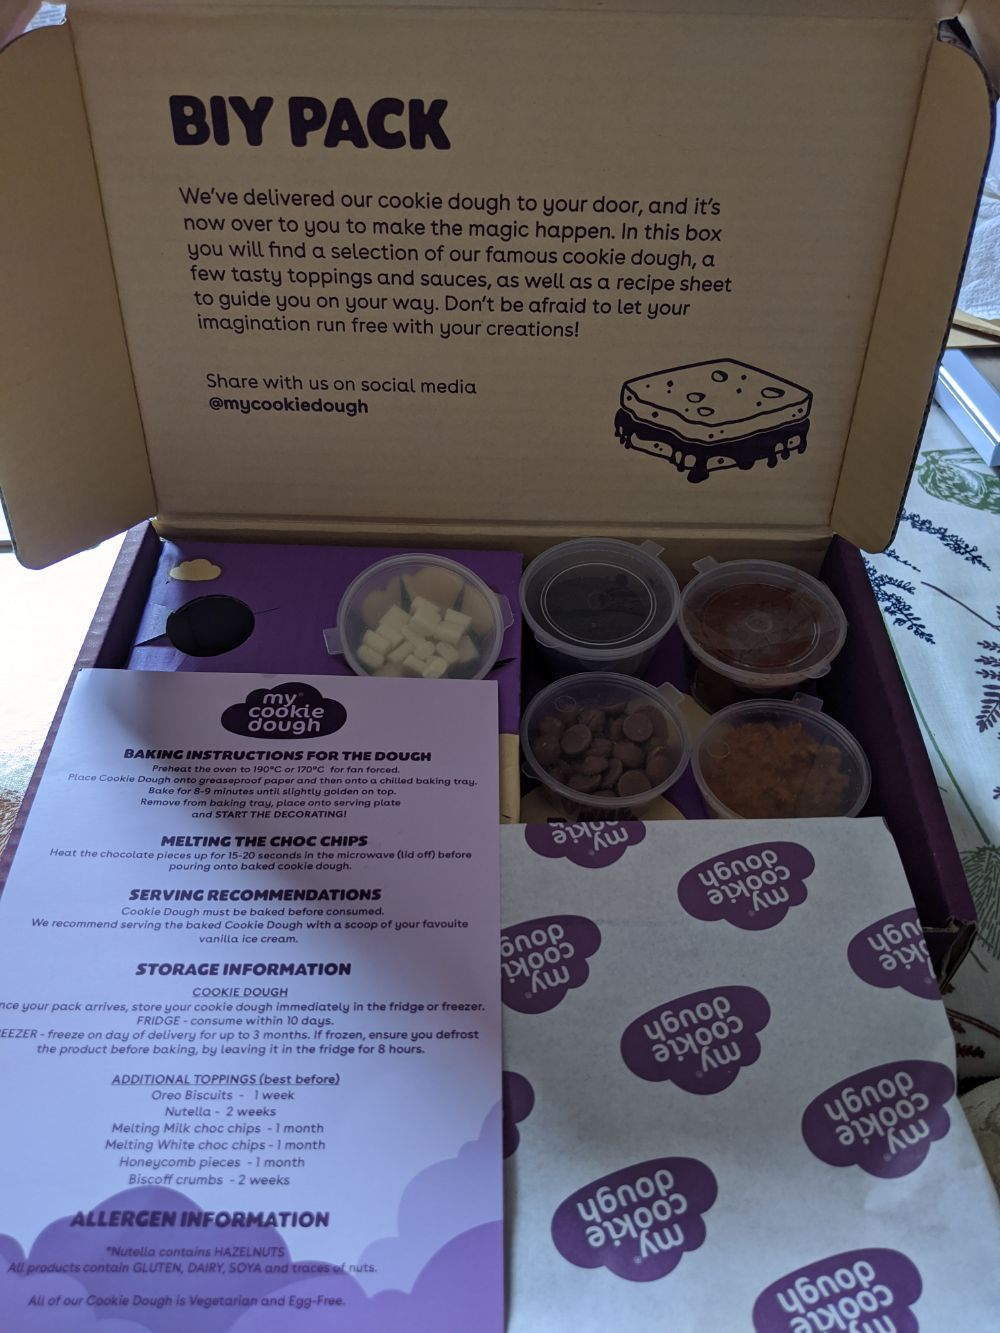 A photo of the baking instructions, as well as the containers that the pack includes